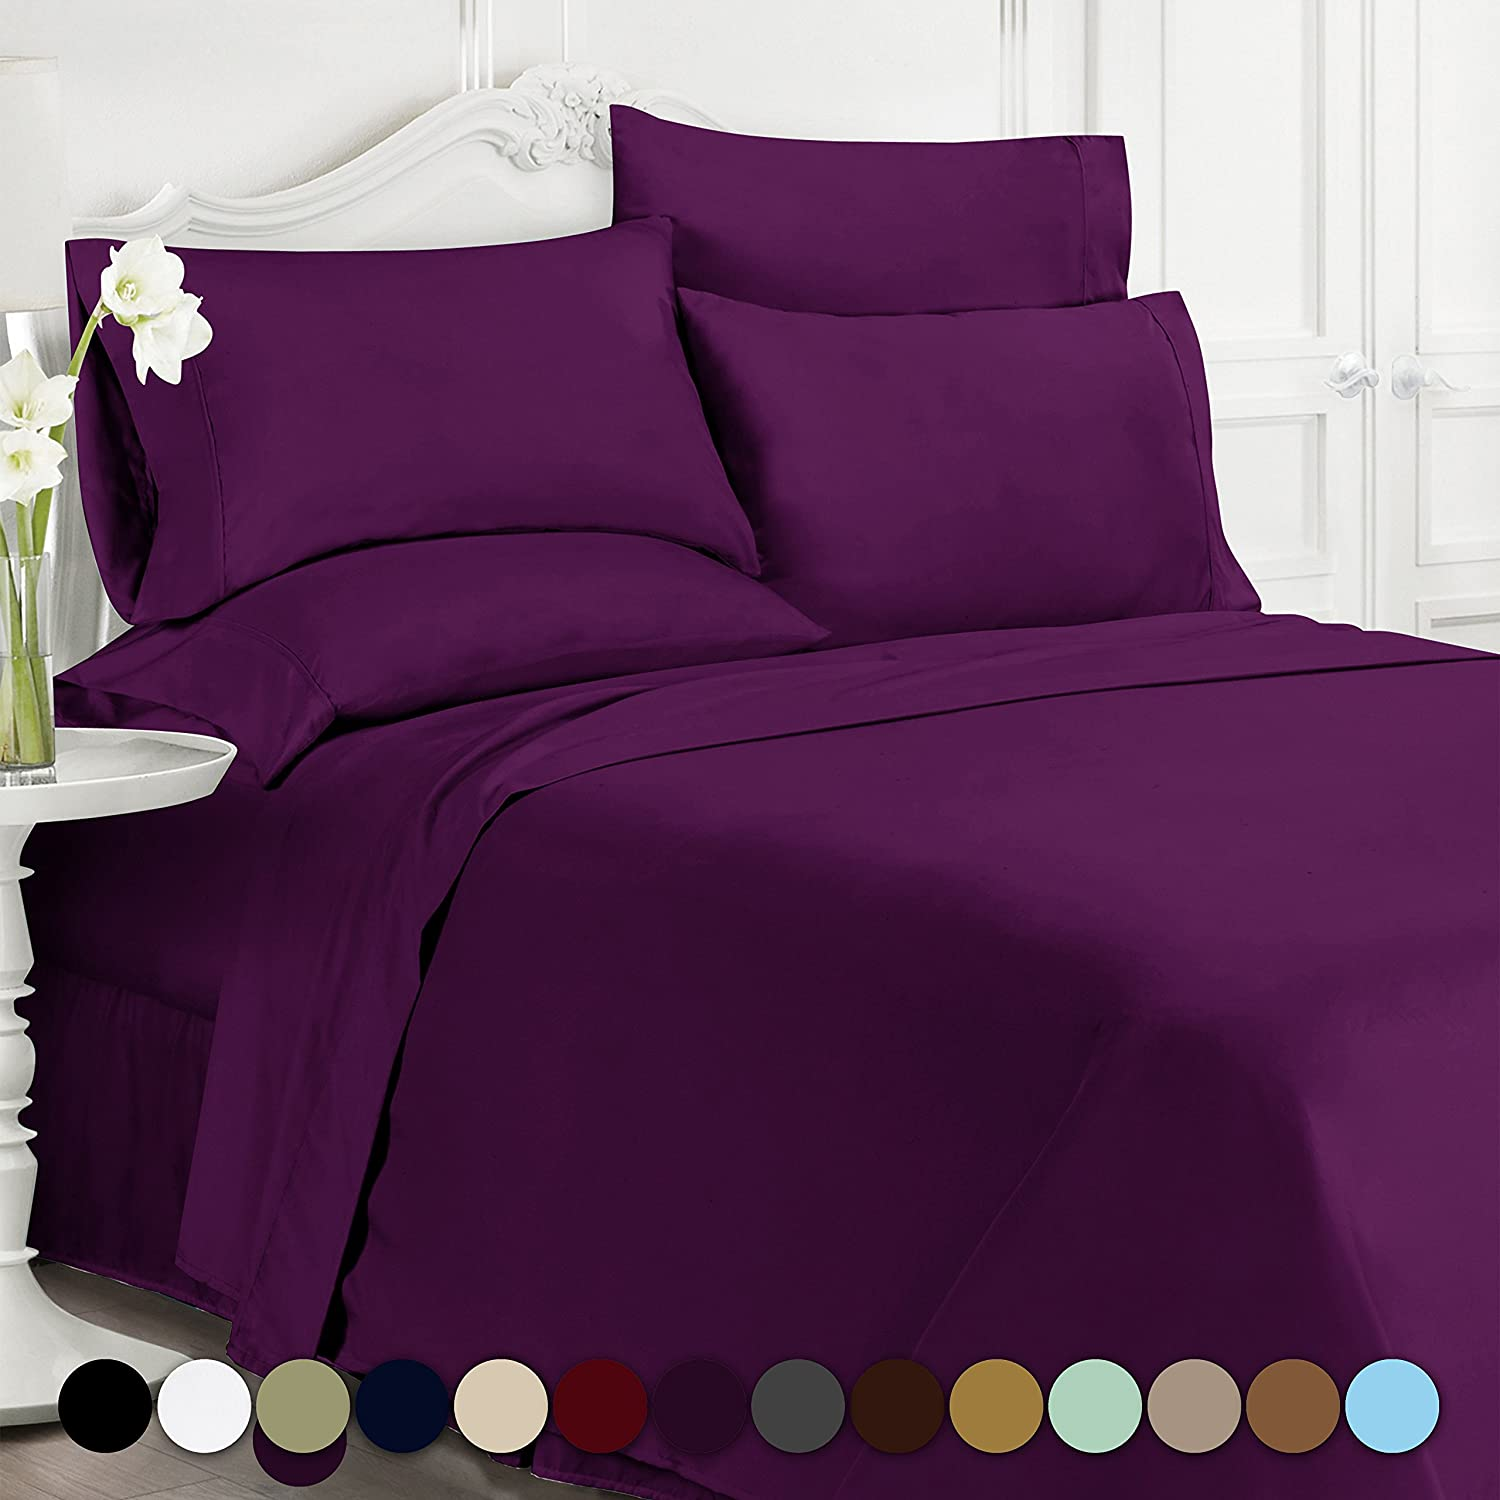 Swift Home Luxury Bedding Collection, Ultra-Soft Brushed Microfiber 6-Piece Bed Sheet Sets Queen, Eggplant